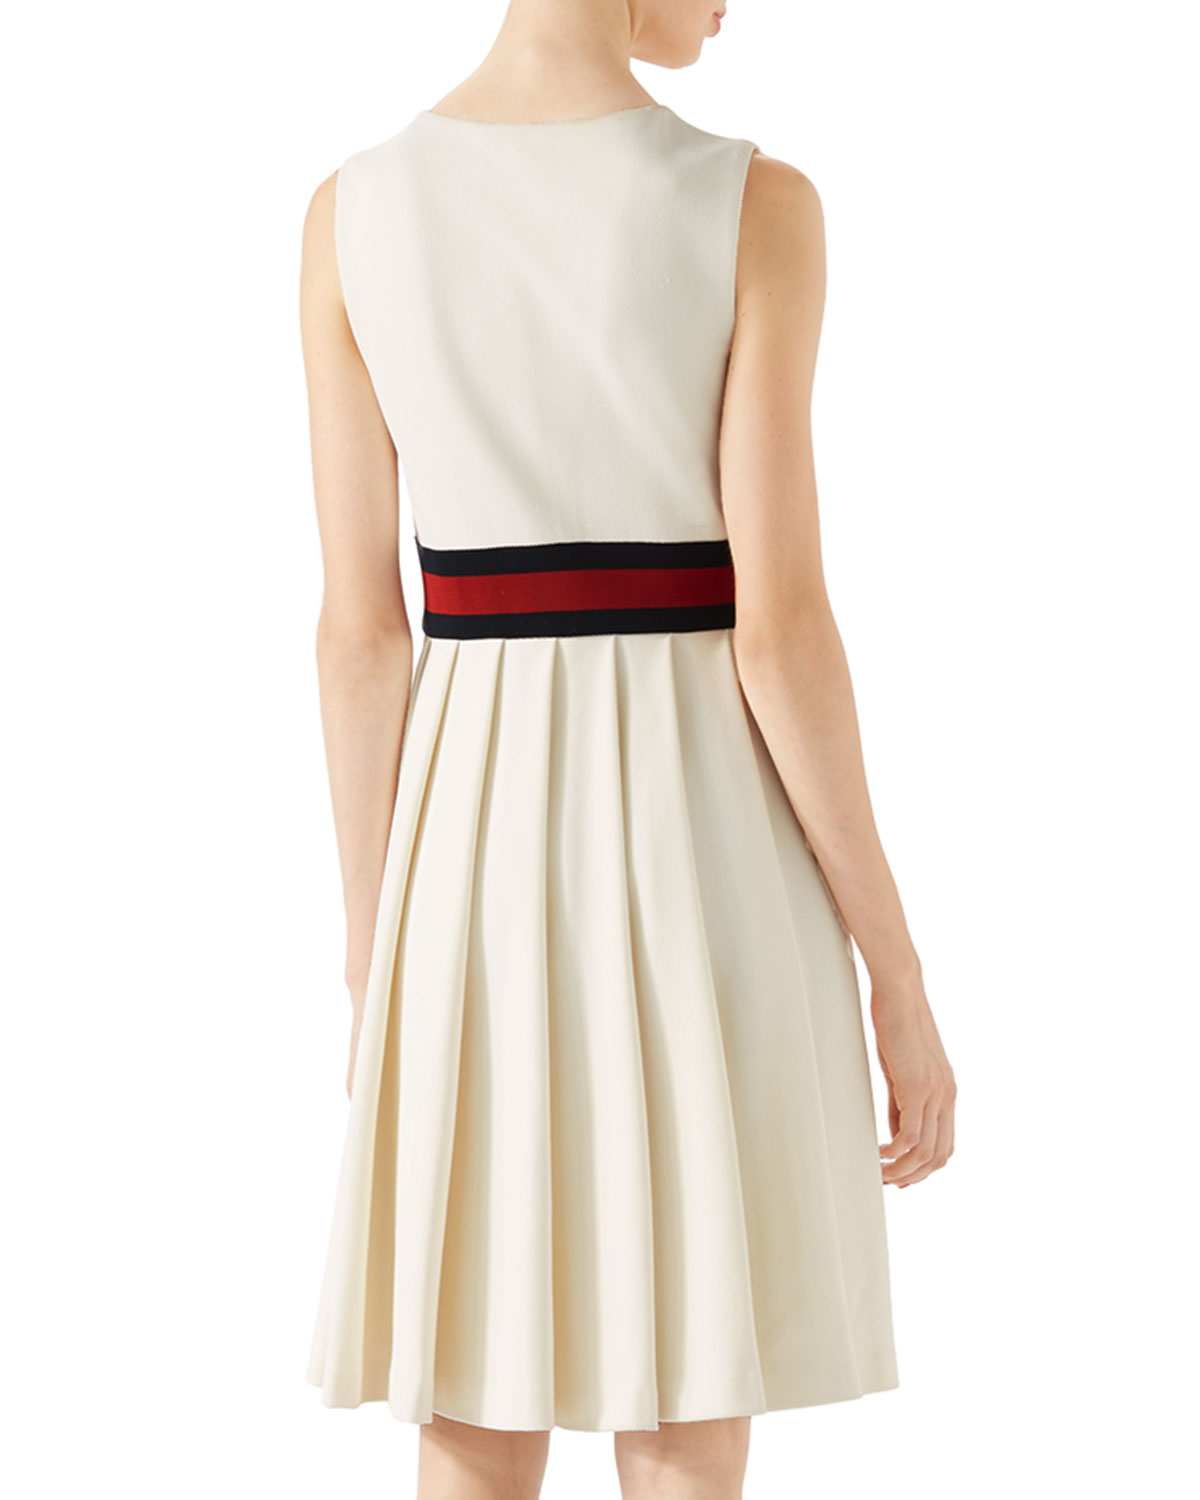 ddc4df7513e Gucci Pleated Jersey Dress in White - Lyst